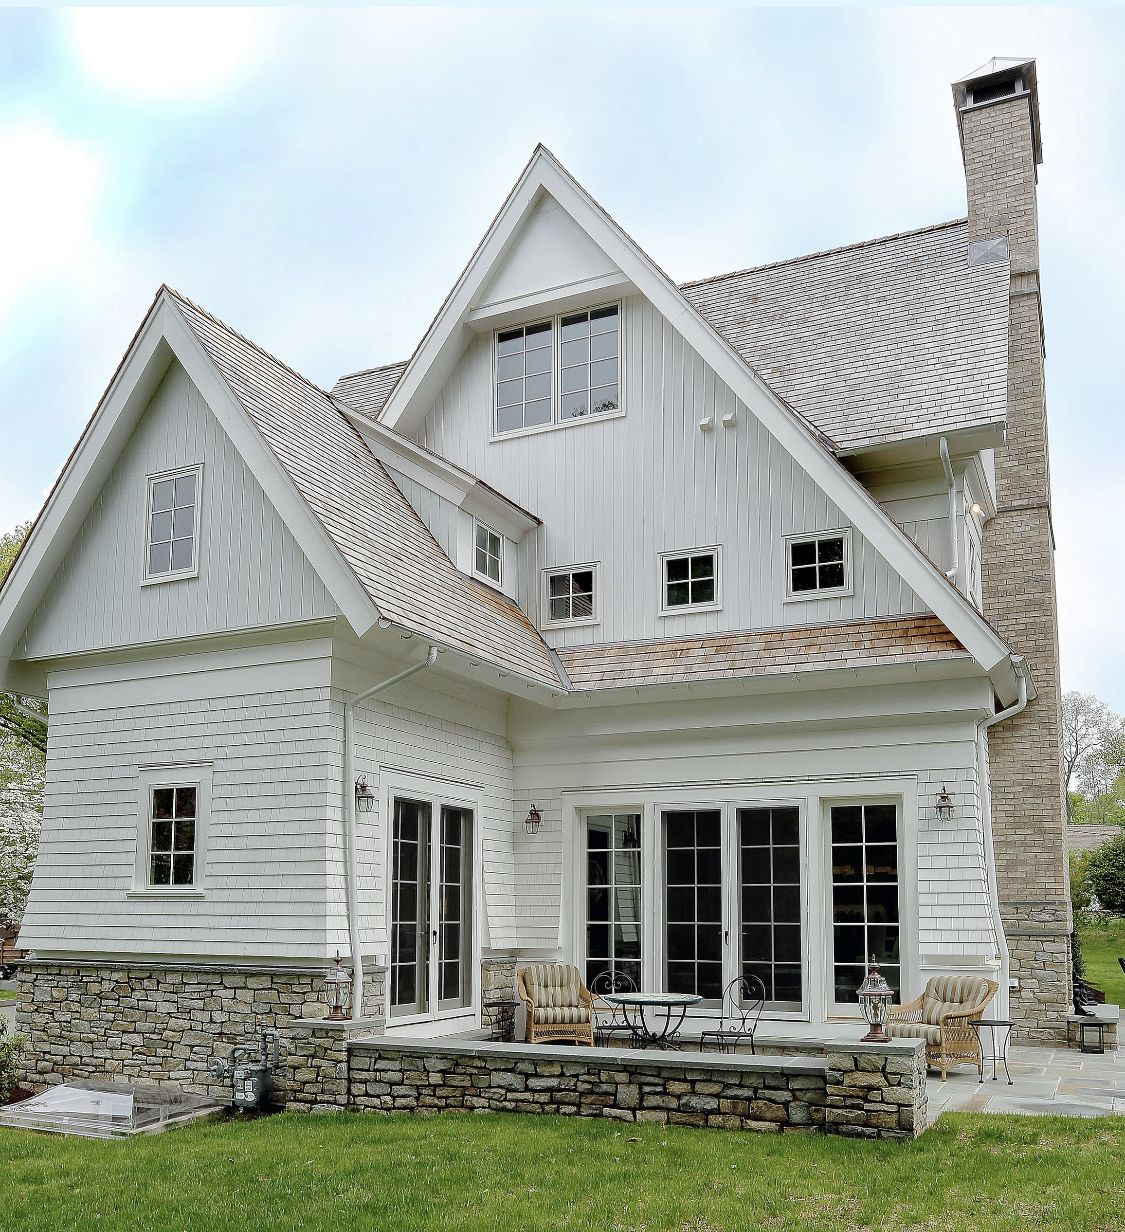 Pin By Kitty Shirley On Decorating In 2020 Shingle House White Siding House Designs Exterior